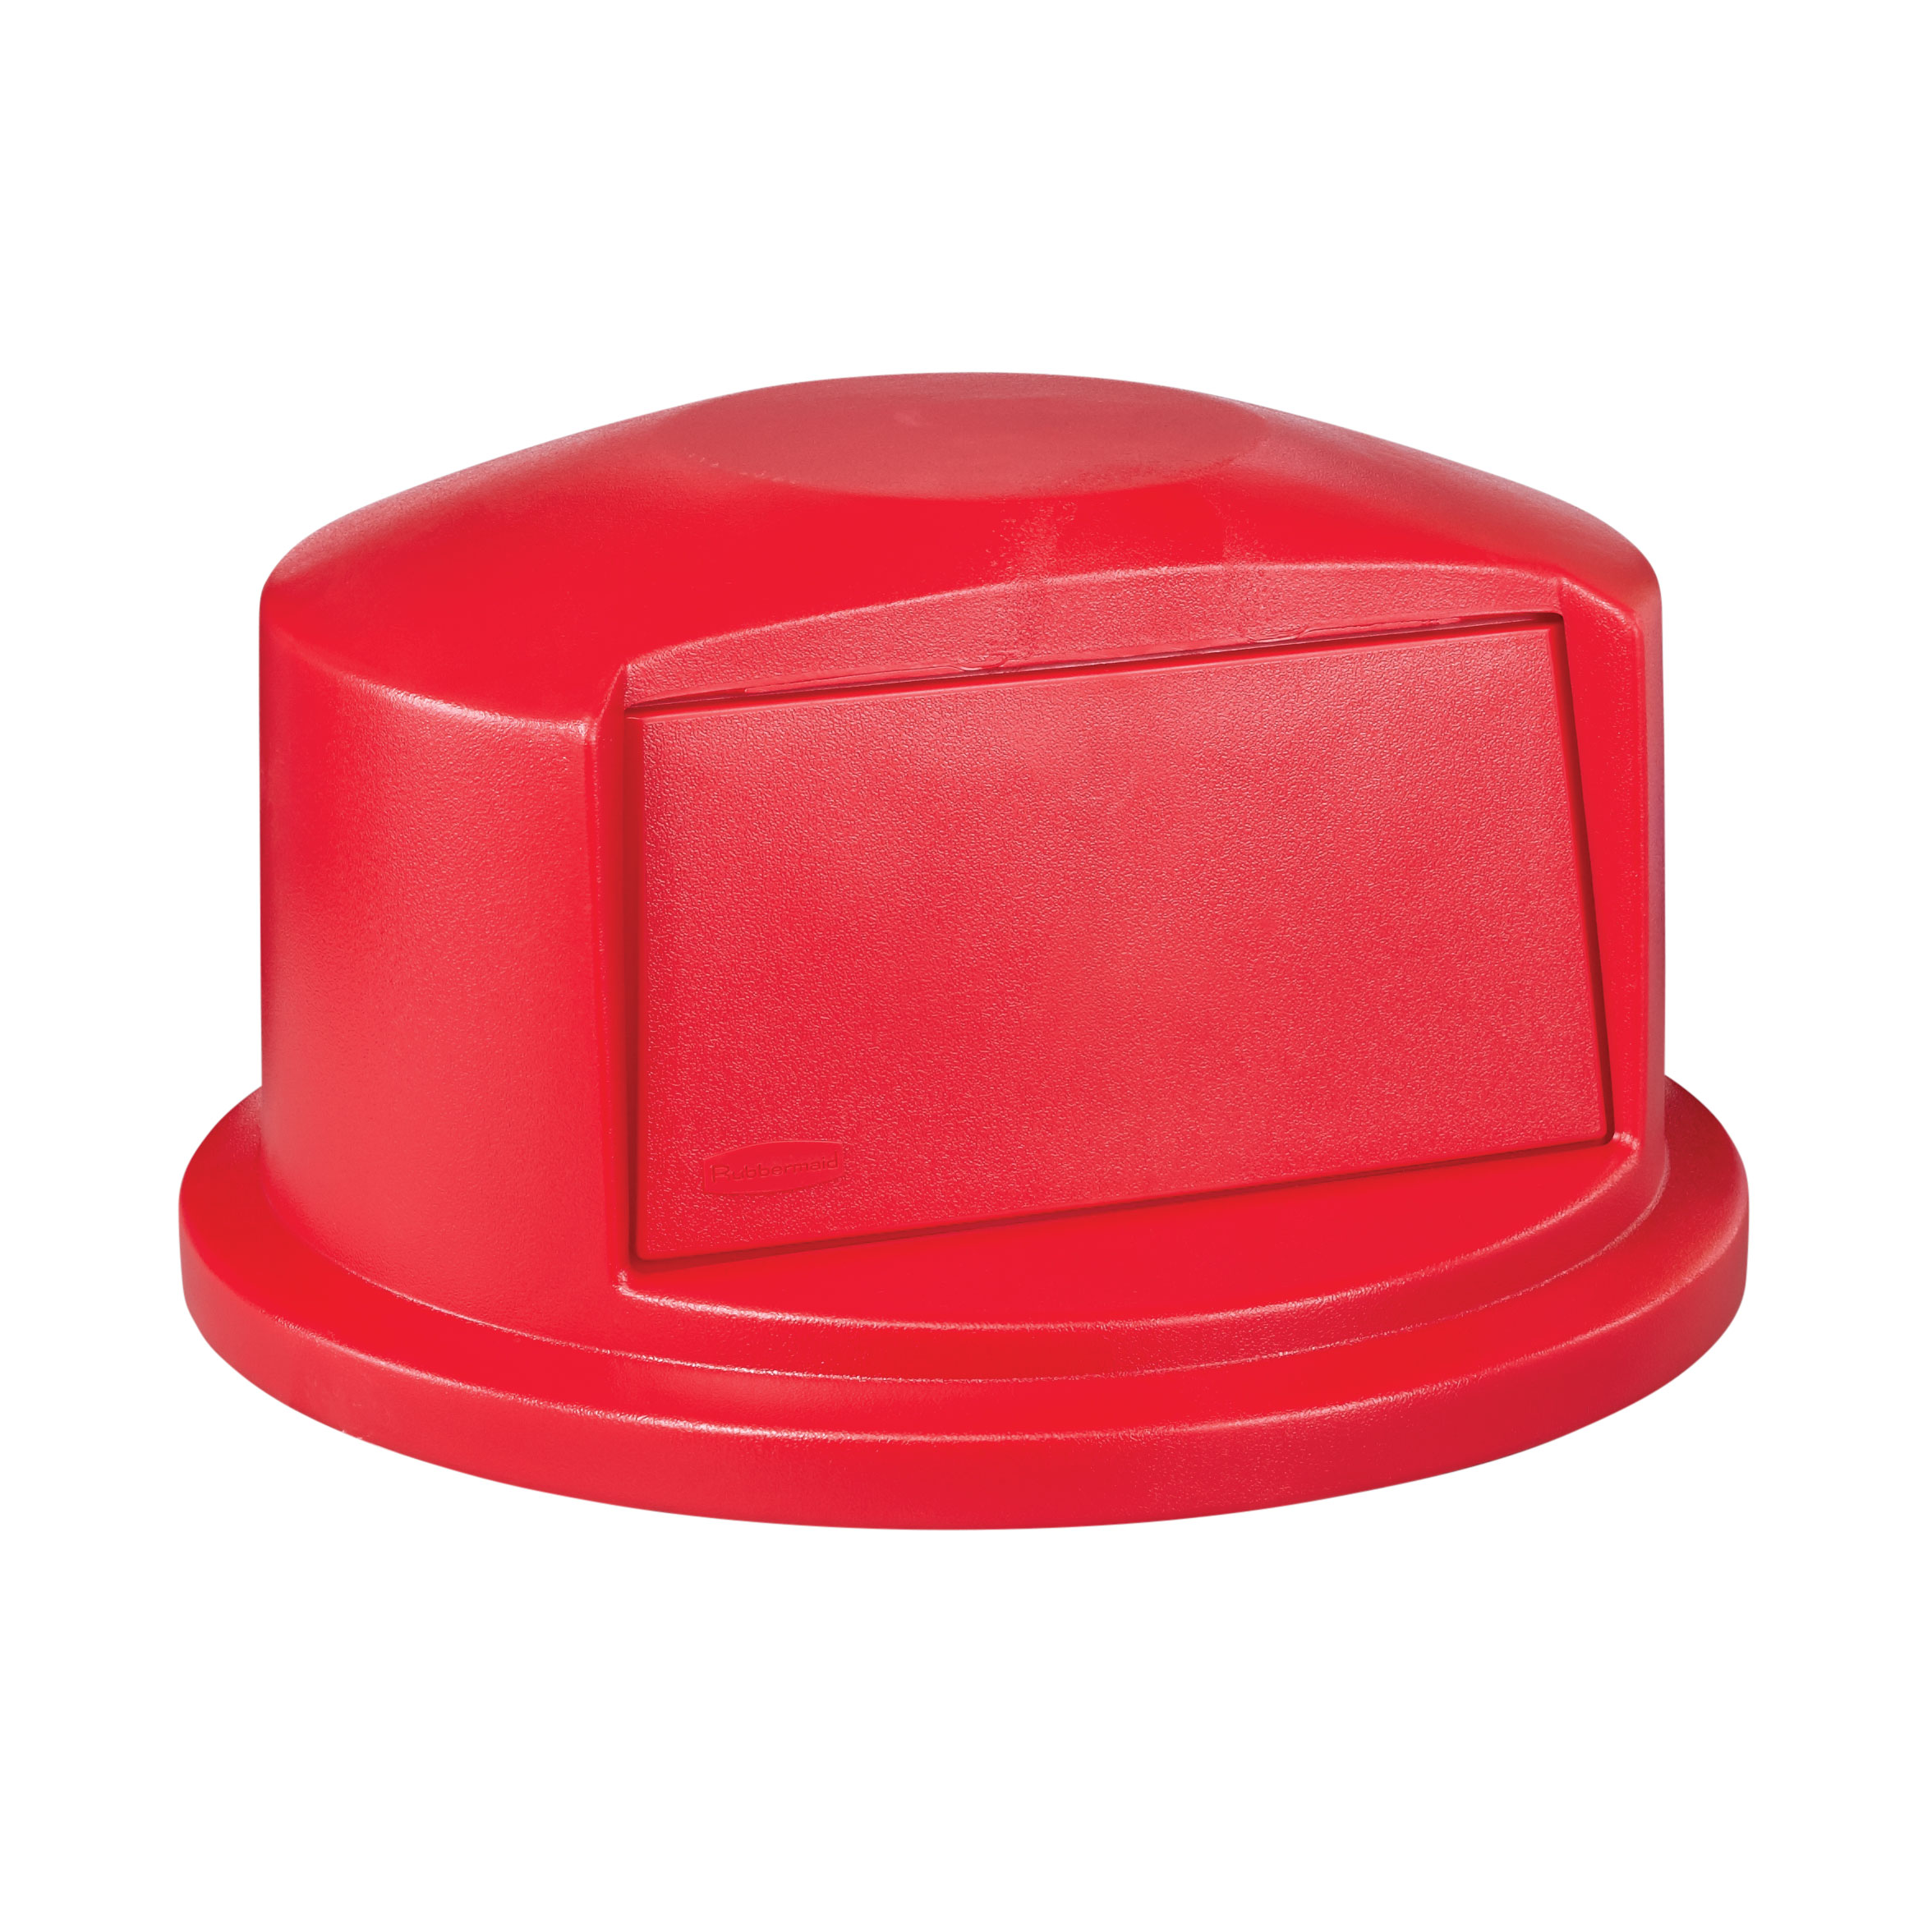 Rubbermaid Commercial Products FG265788RED trash receptacle lid / top